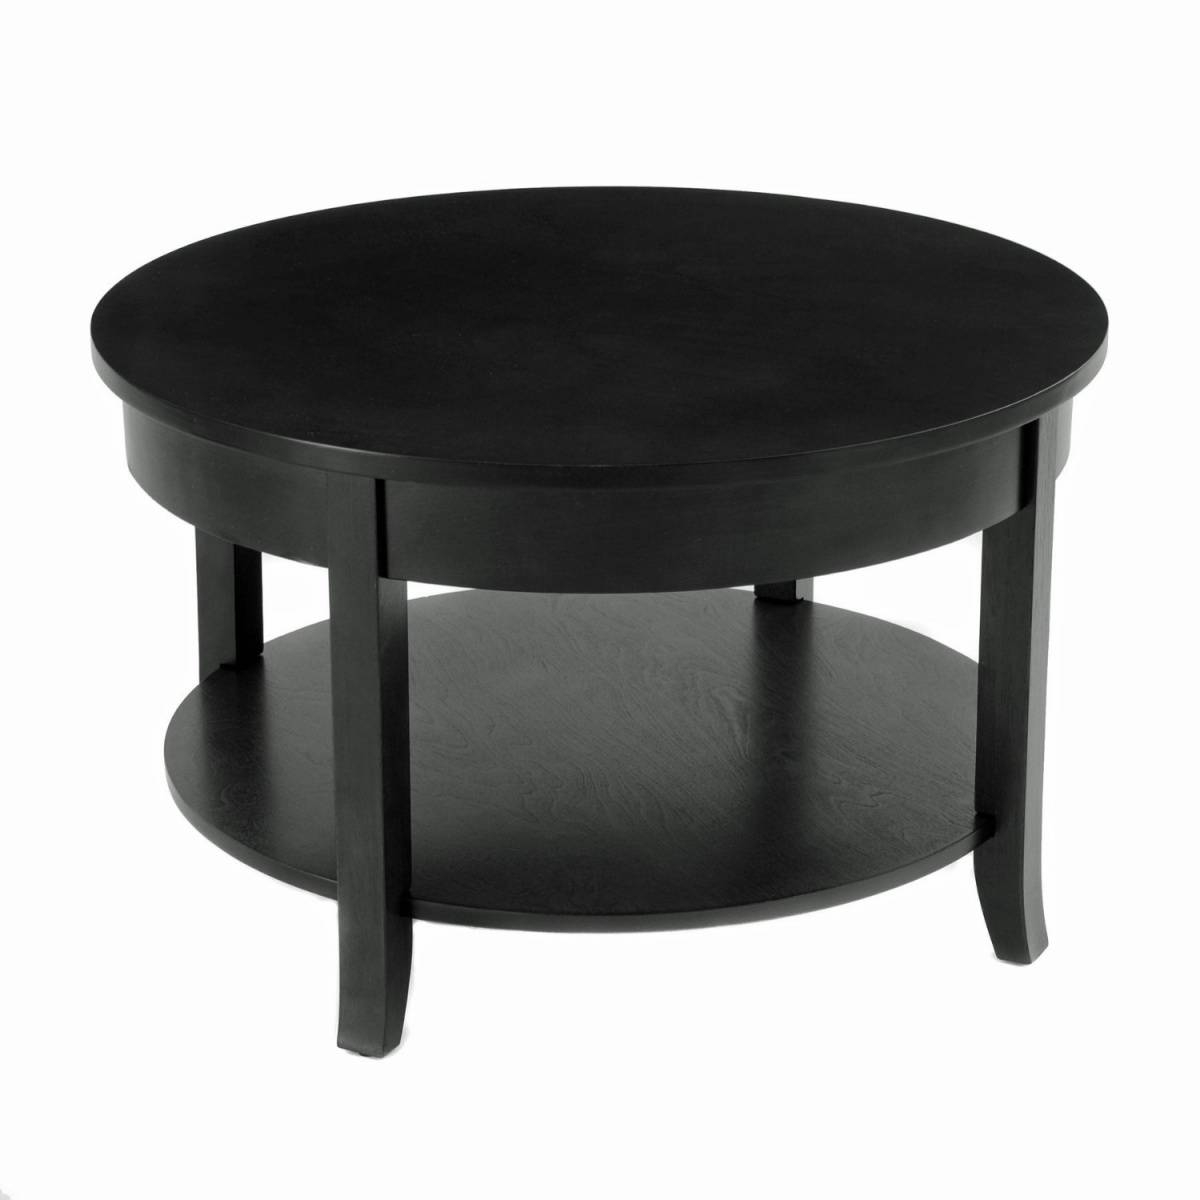 Runder Couchtisch Schwarz 30 The Best Round Coffee Tables With Storage